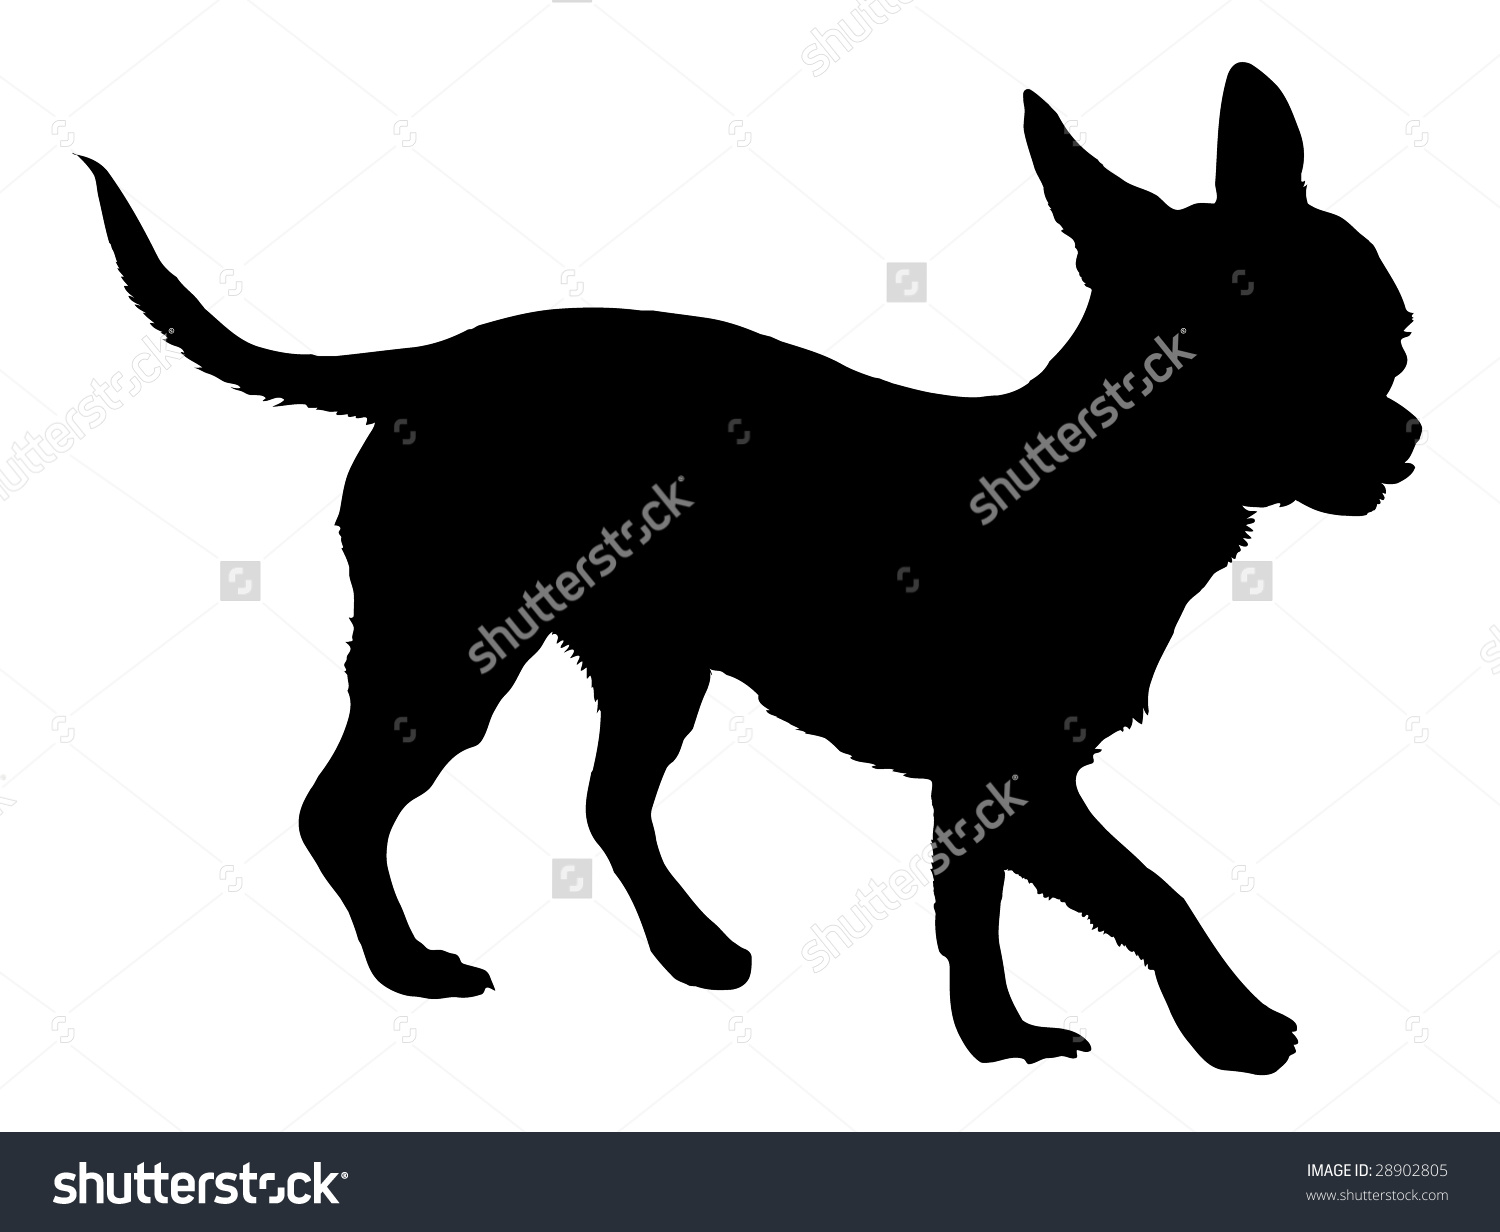 Silhouette free pnglogocoloring pages. Chihuahua clipart vector